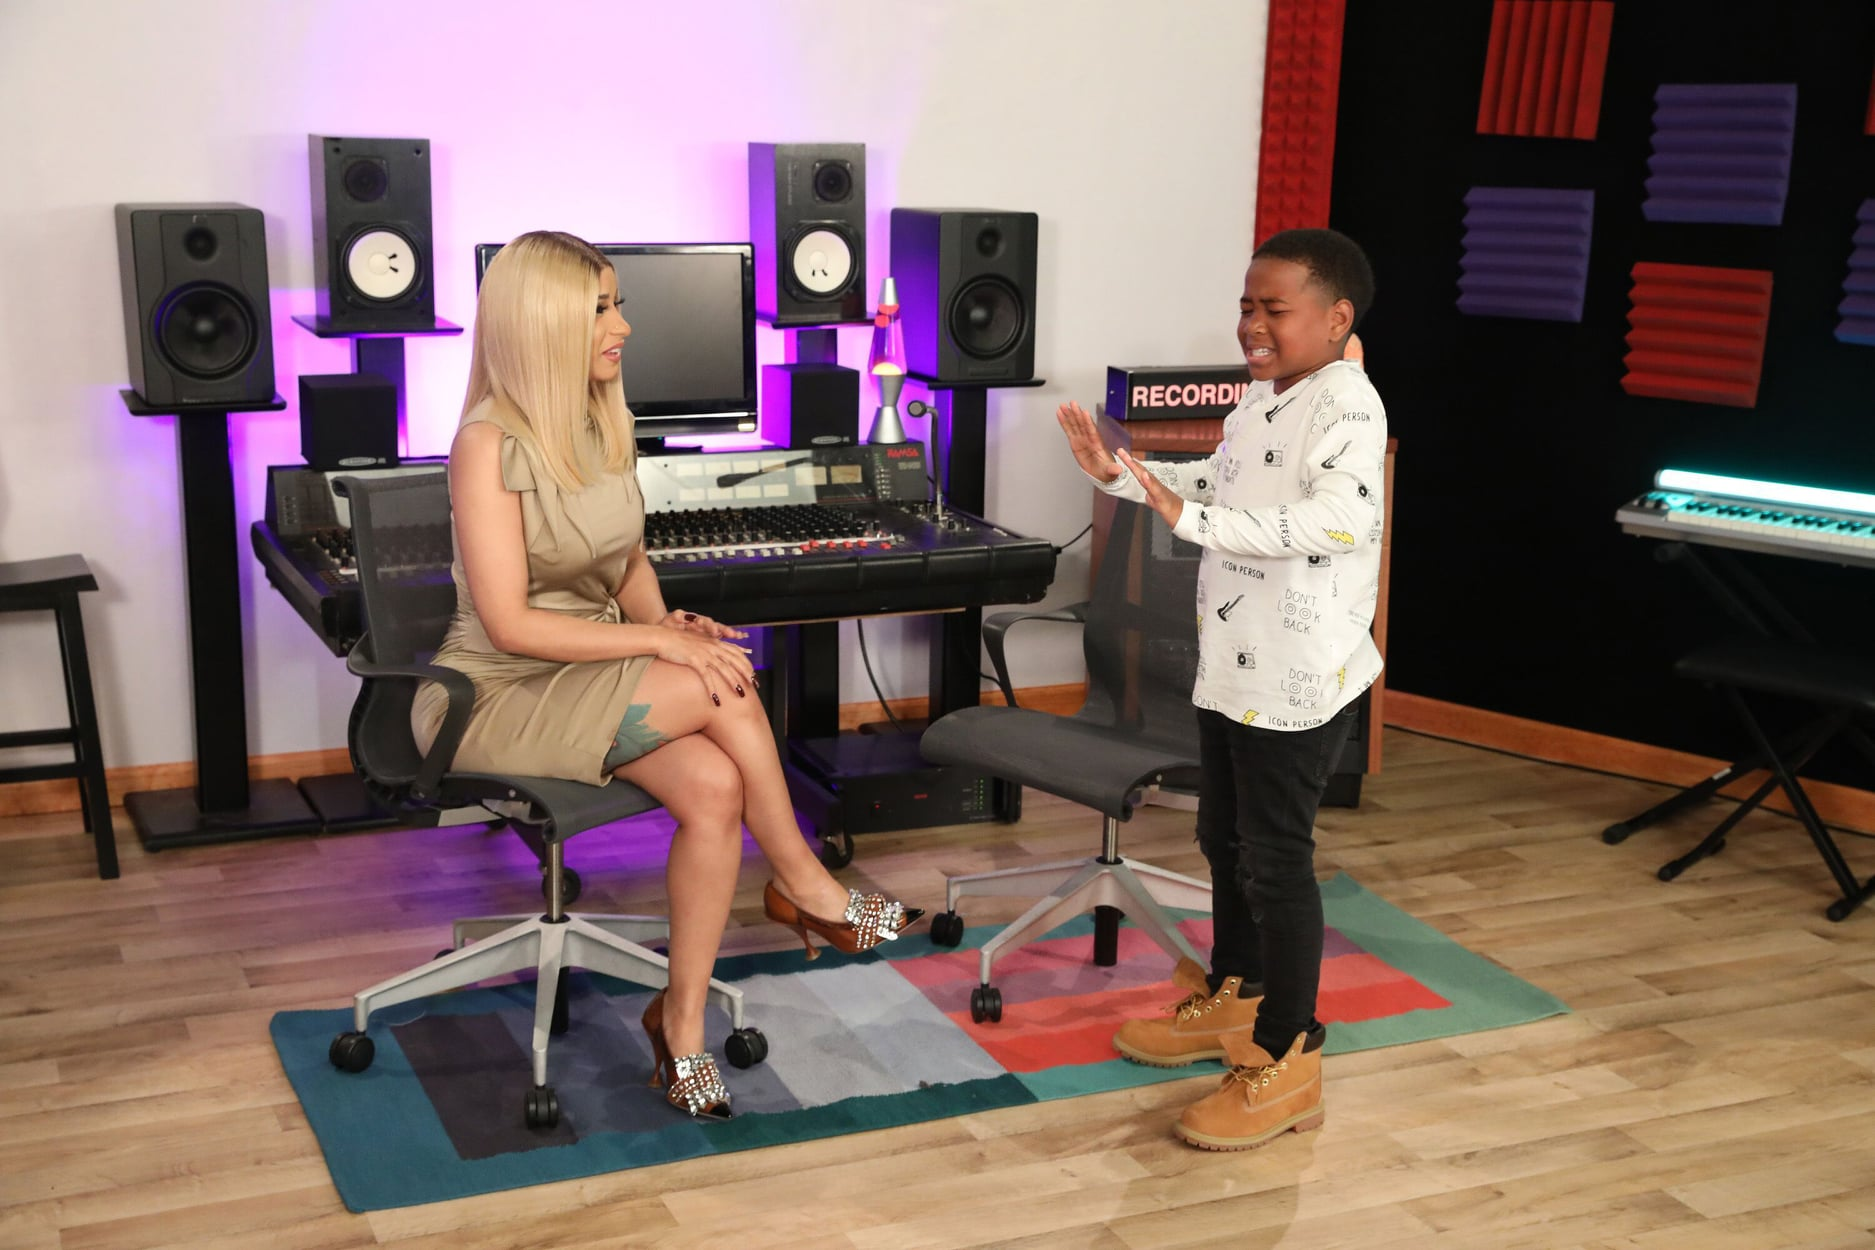 Cardi B Plays 'Rhyme Wars' With EllenTube's Young Dylan and adviced to do so